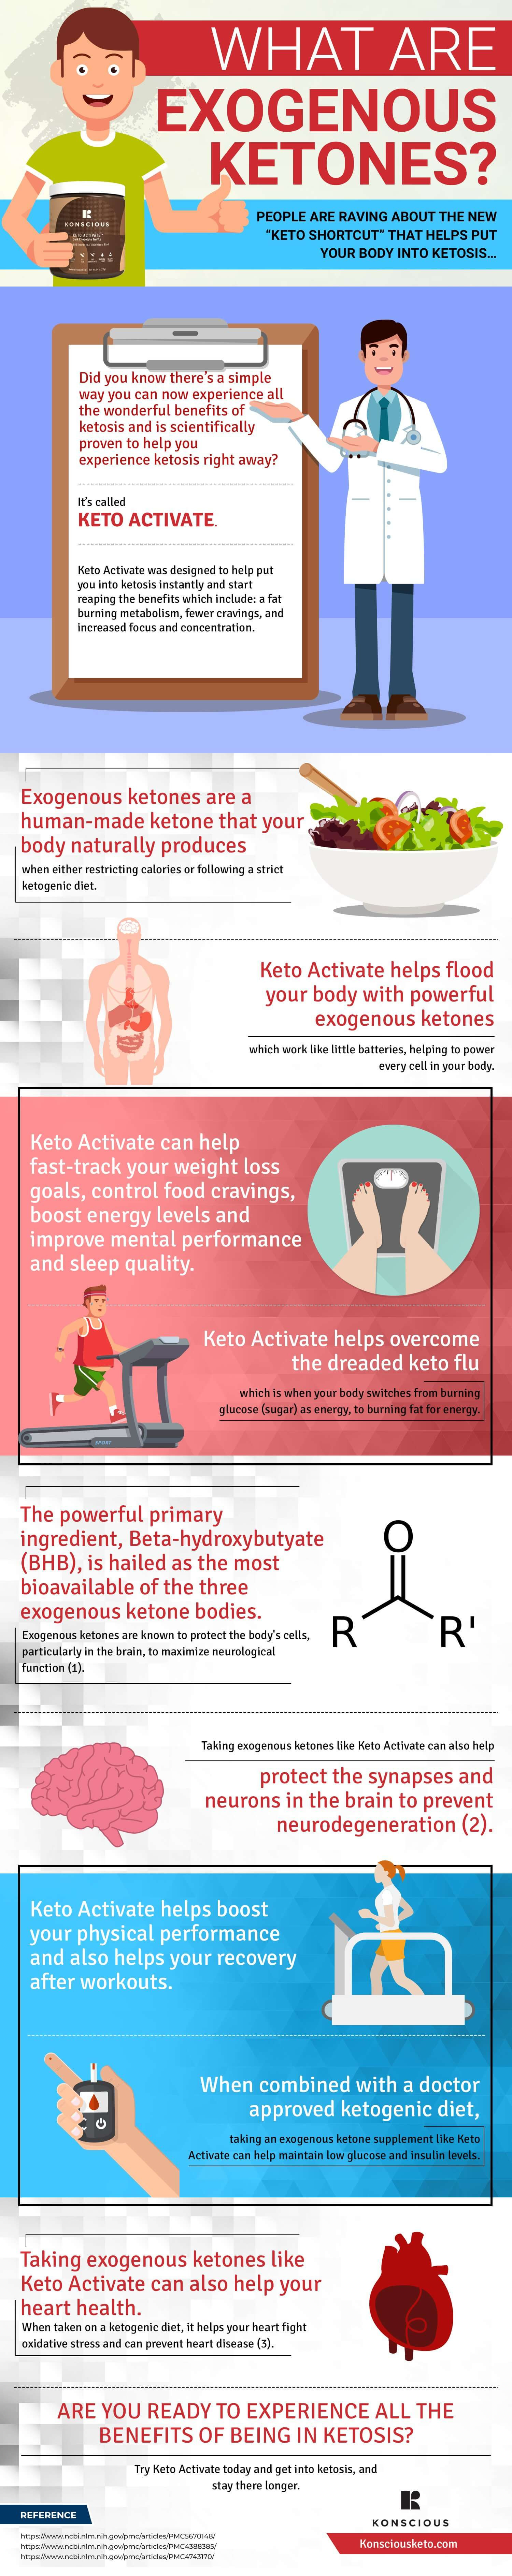 What are Exogenous Ketones? Infographic